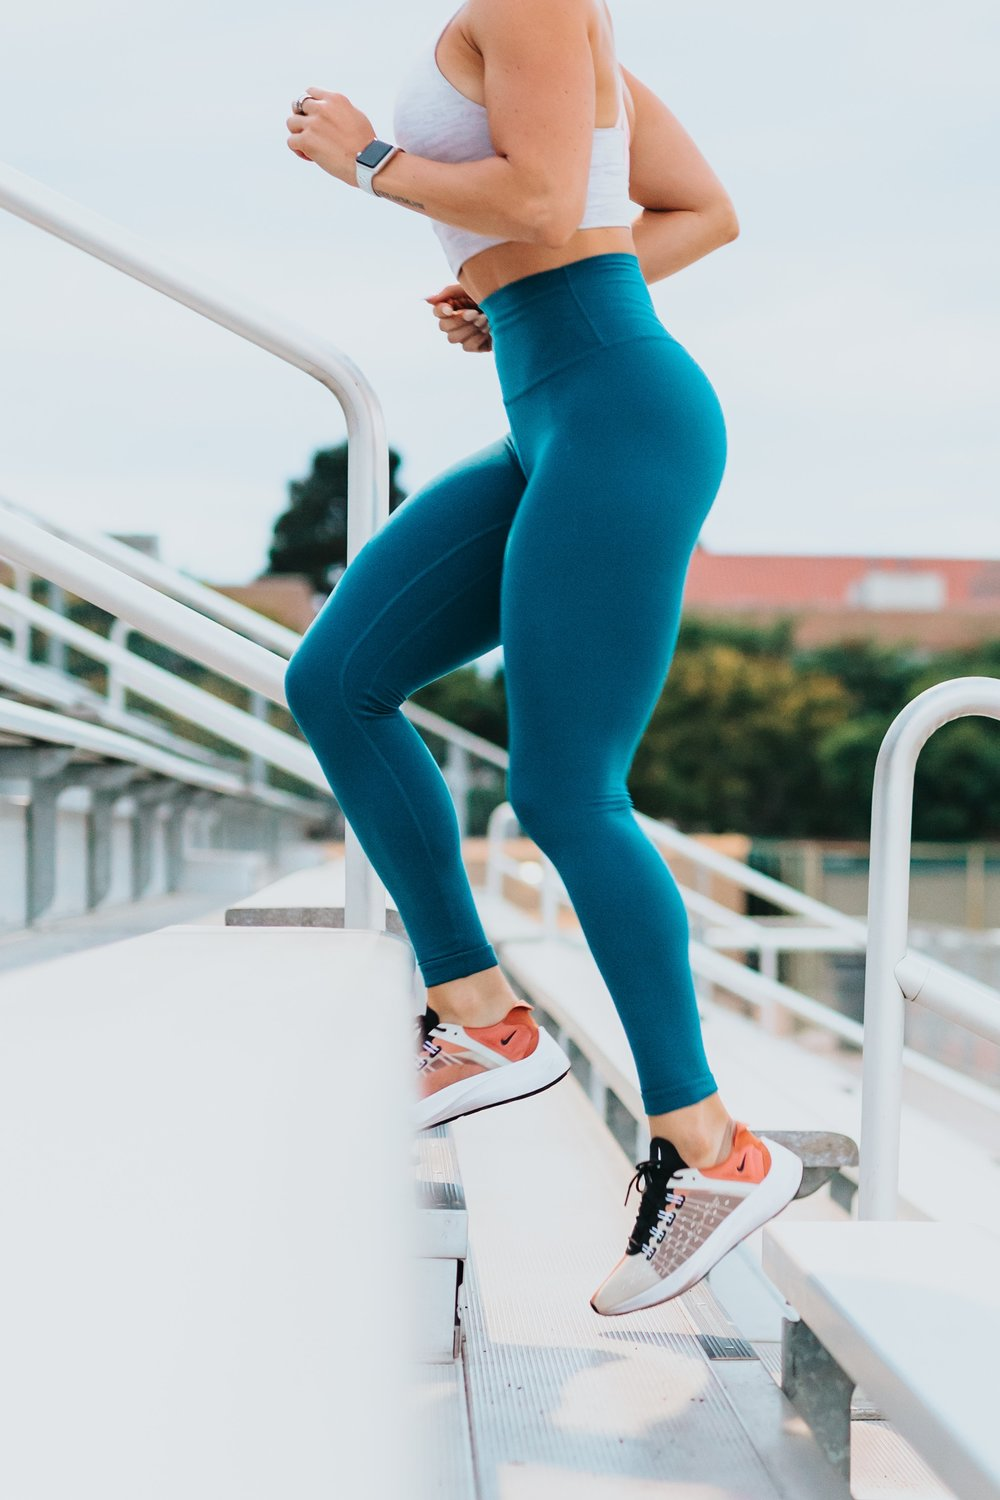 4 Easy Ways To Incorporate Fitness Into Your Busy Week